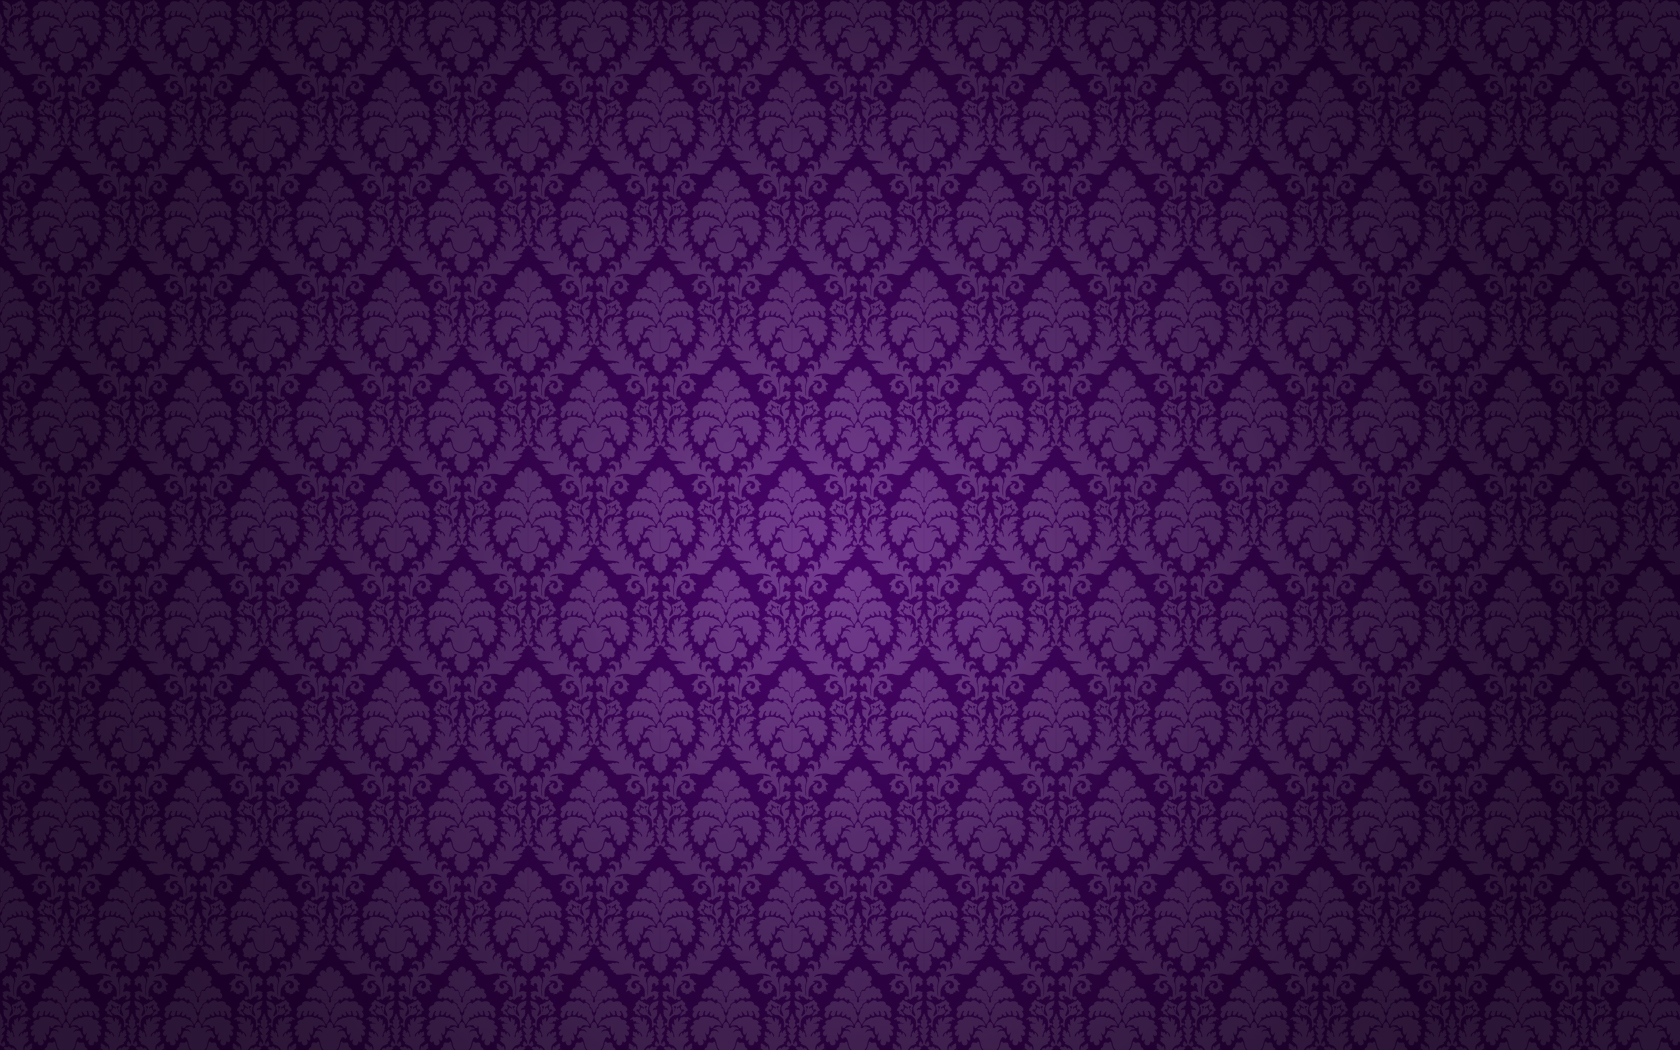 Purple Background Stock Photos And Images  123RF